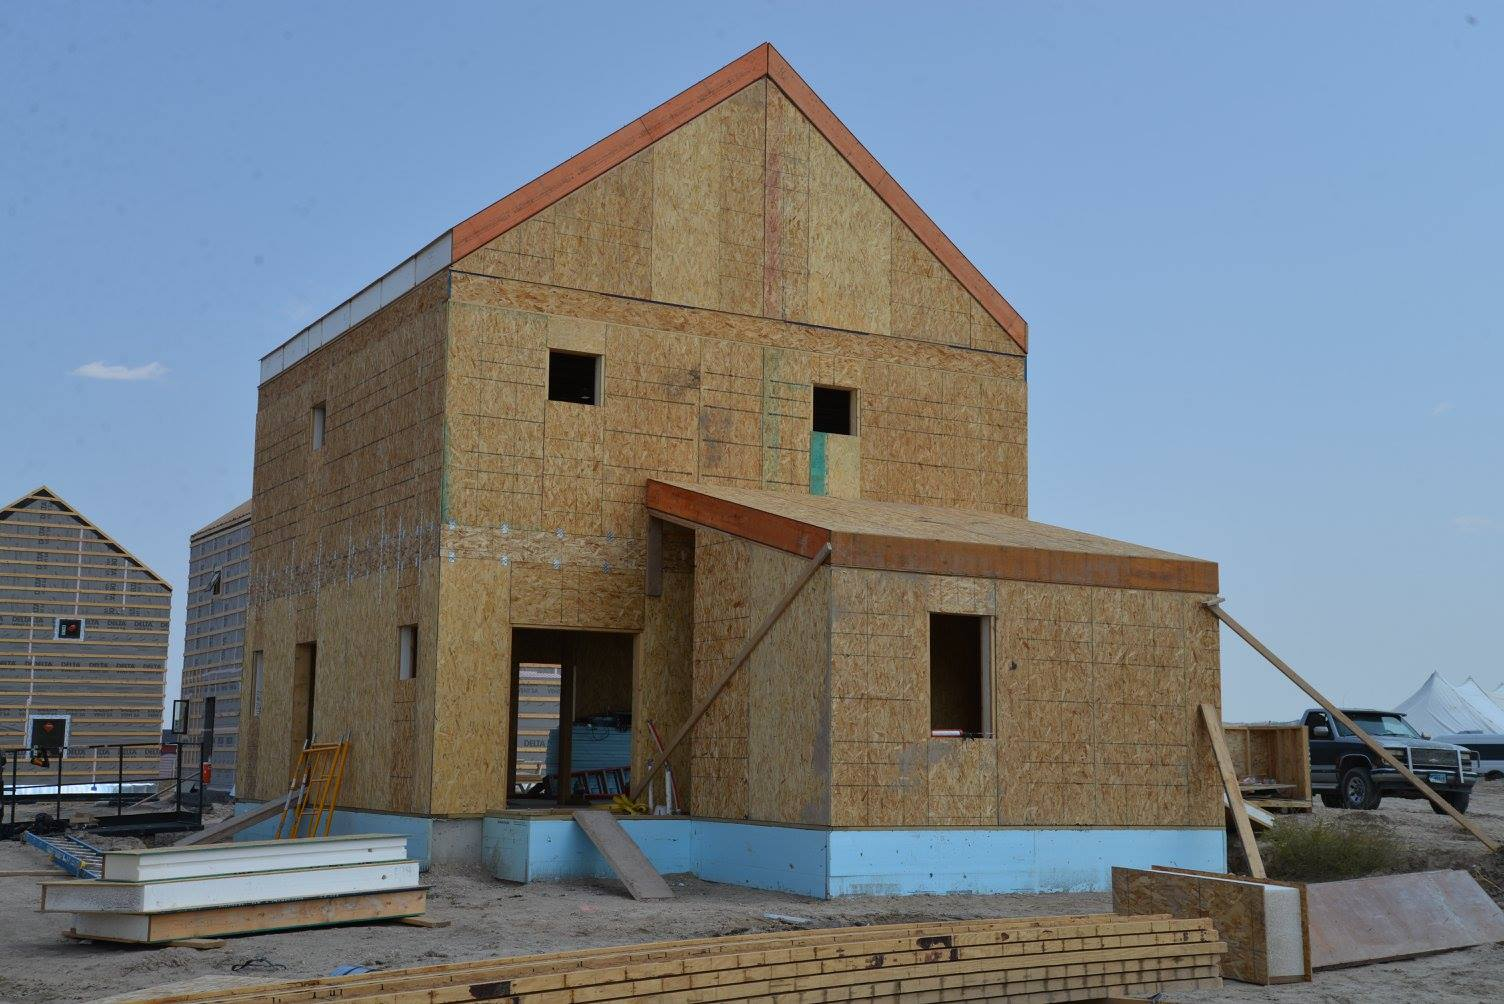 Enercept helps construct a sustainable community that provides affordable living